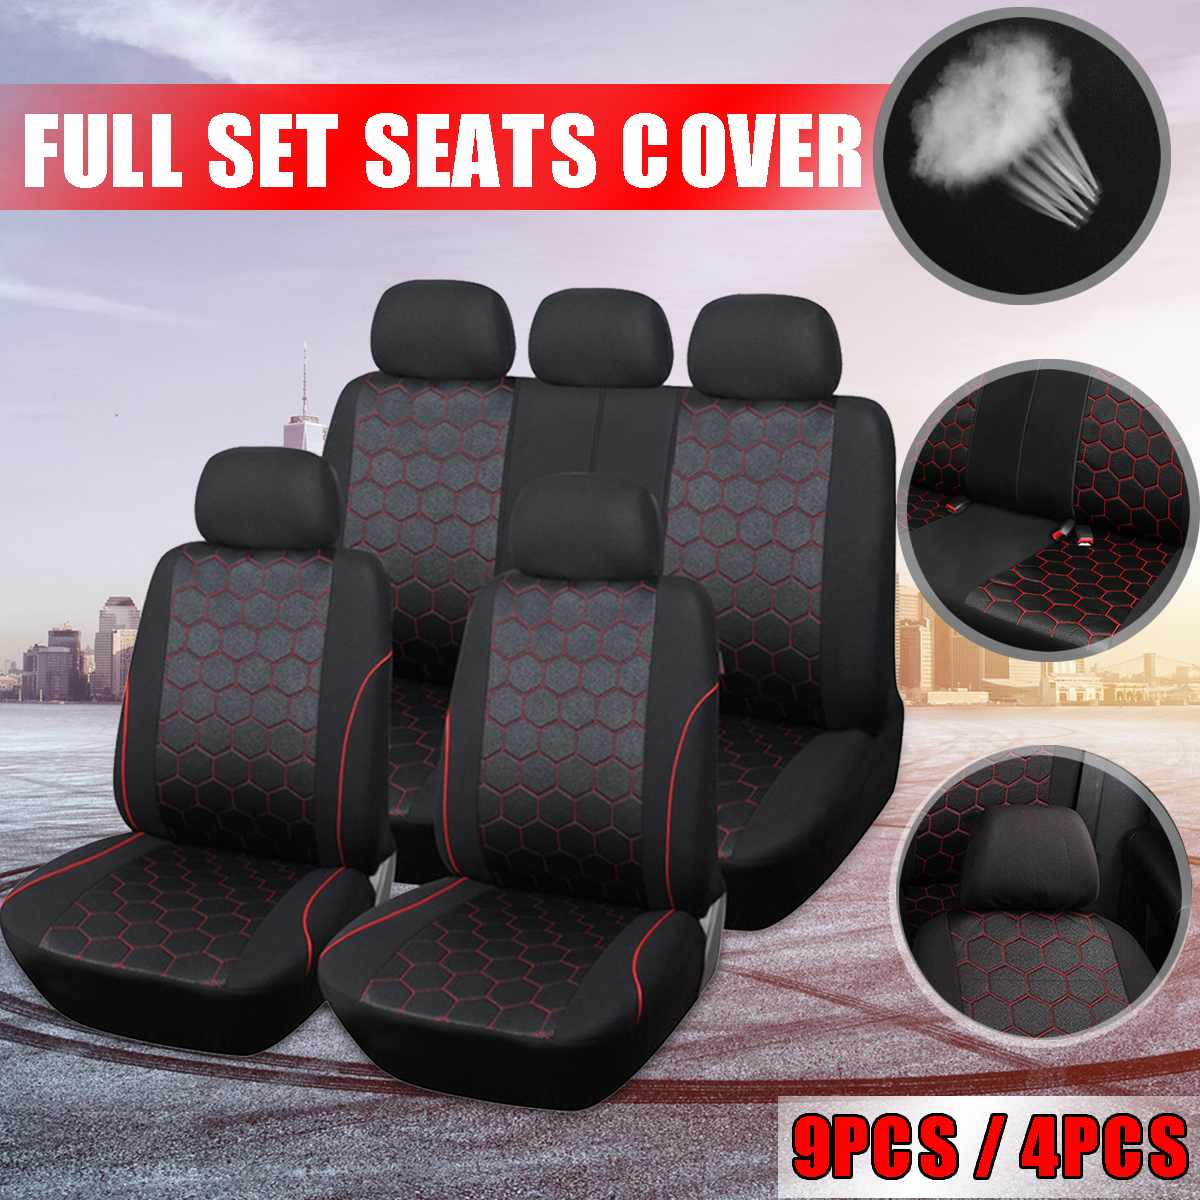 9PCS Waterproof Car Seat Cover Universal Fit Most Vehicles Seats Interior Accessories Seat Covers Cushion Car Seat Protector